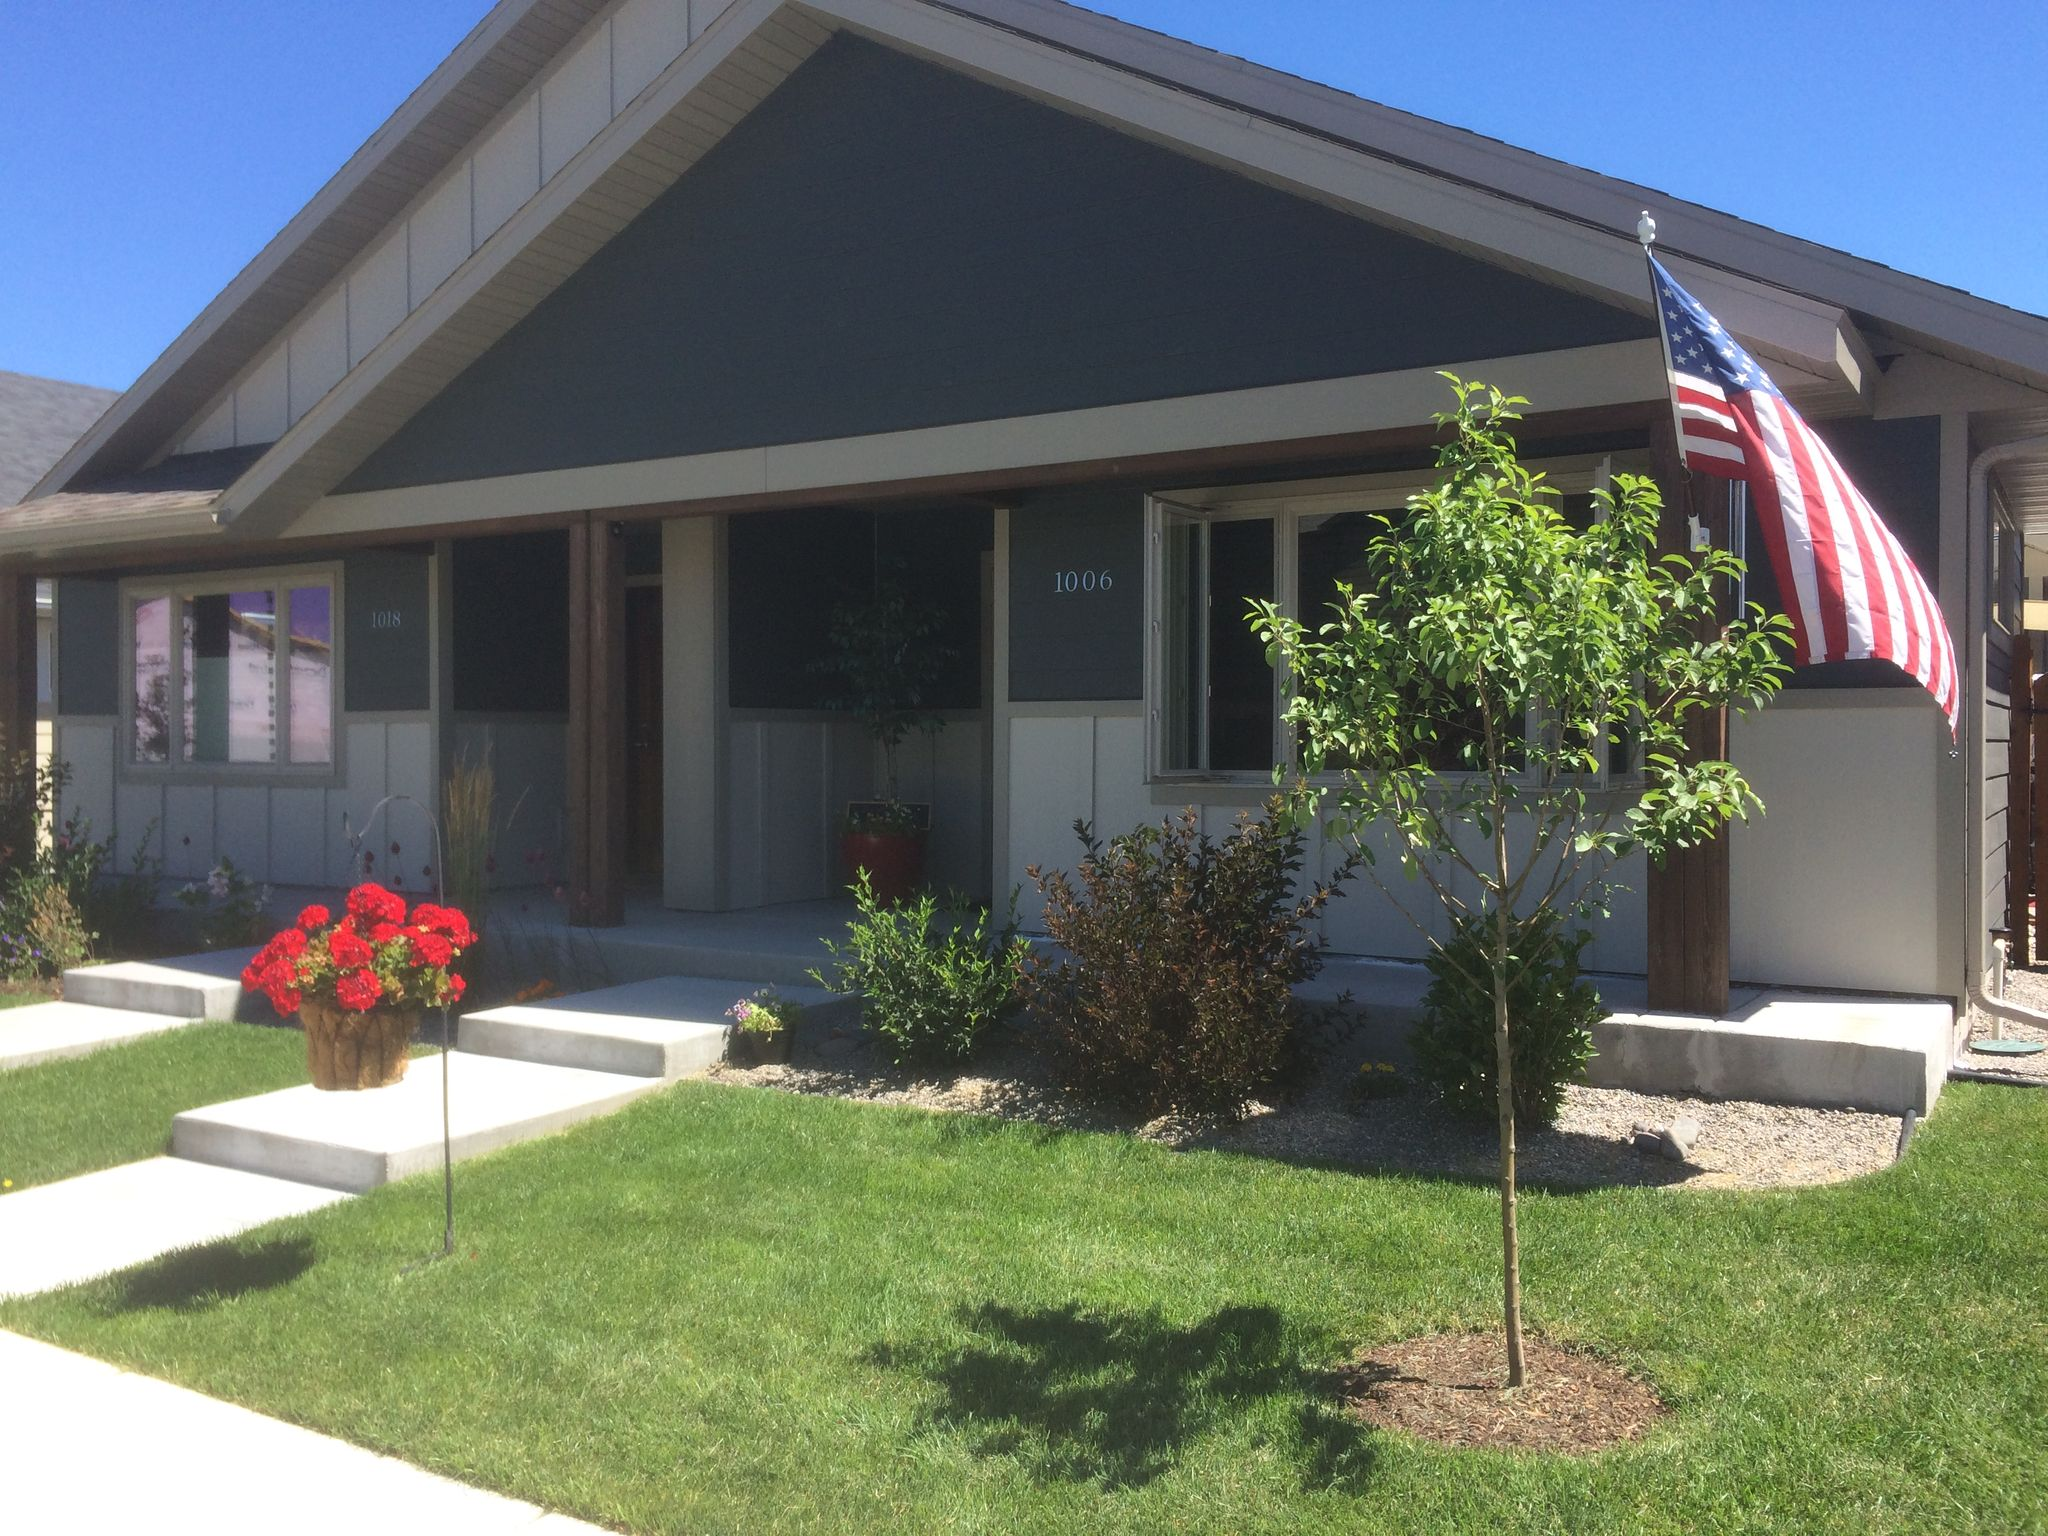 1008 twin lakes ave bozeman mt 59718 estimate and home details